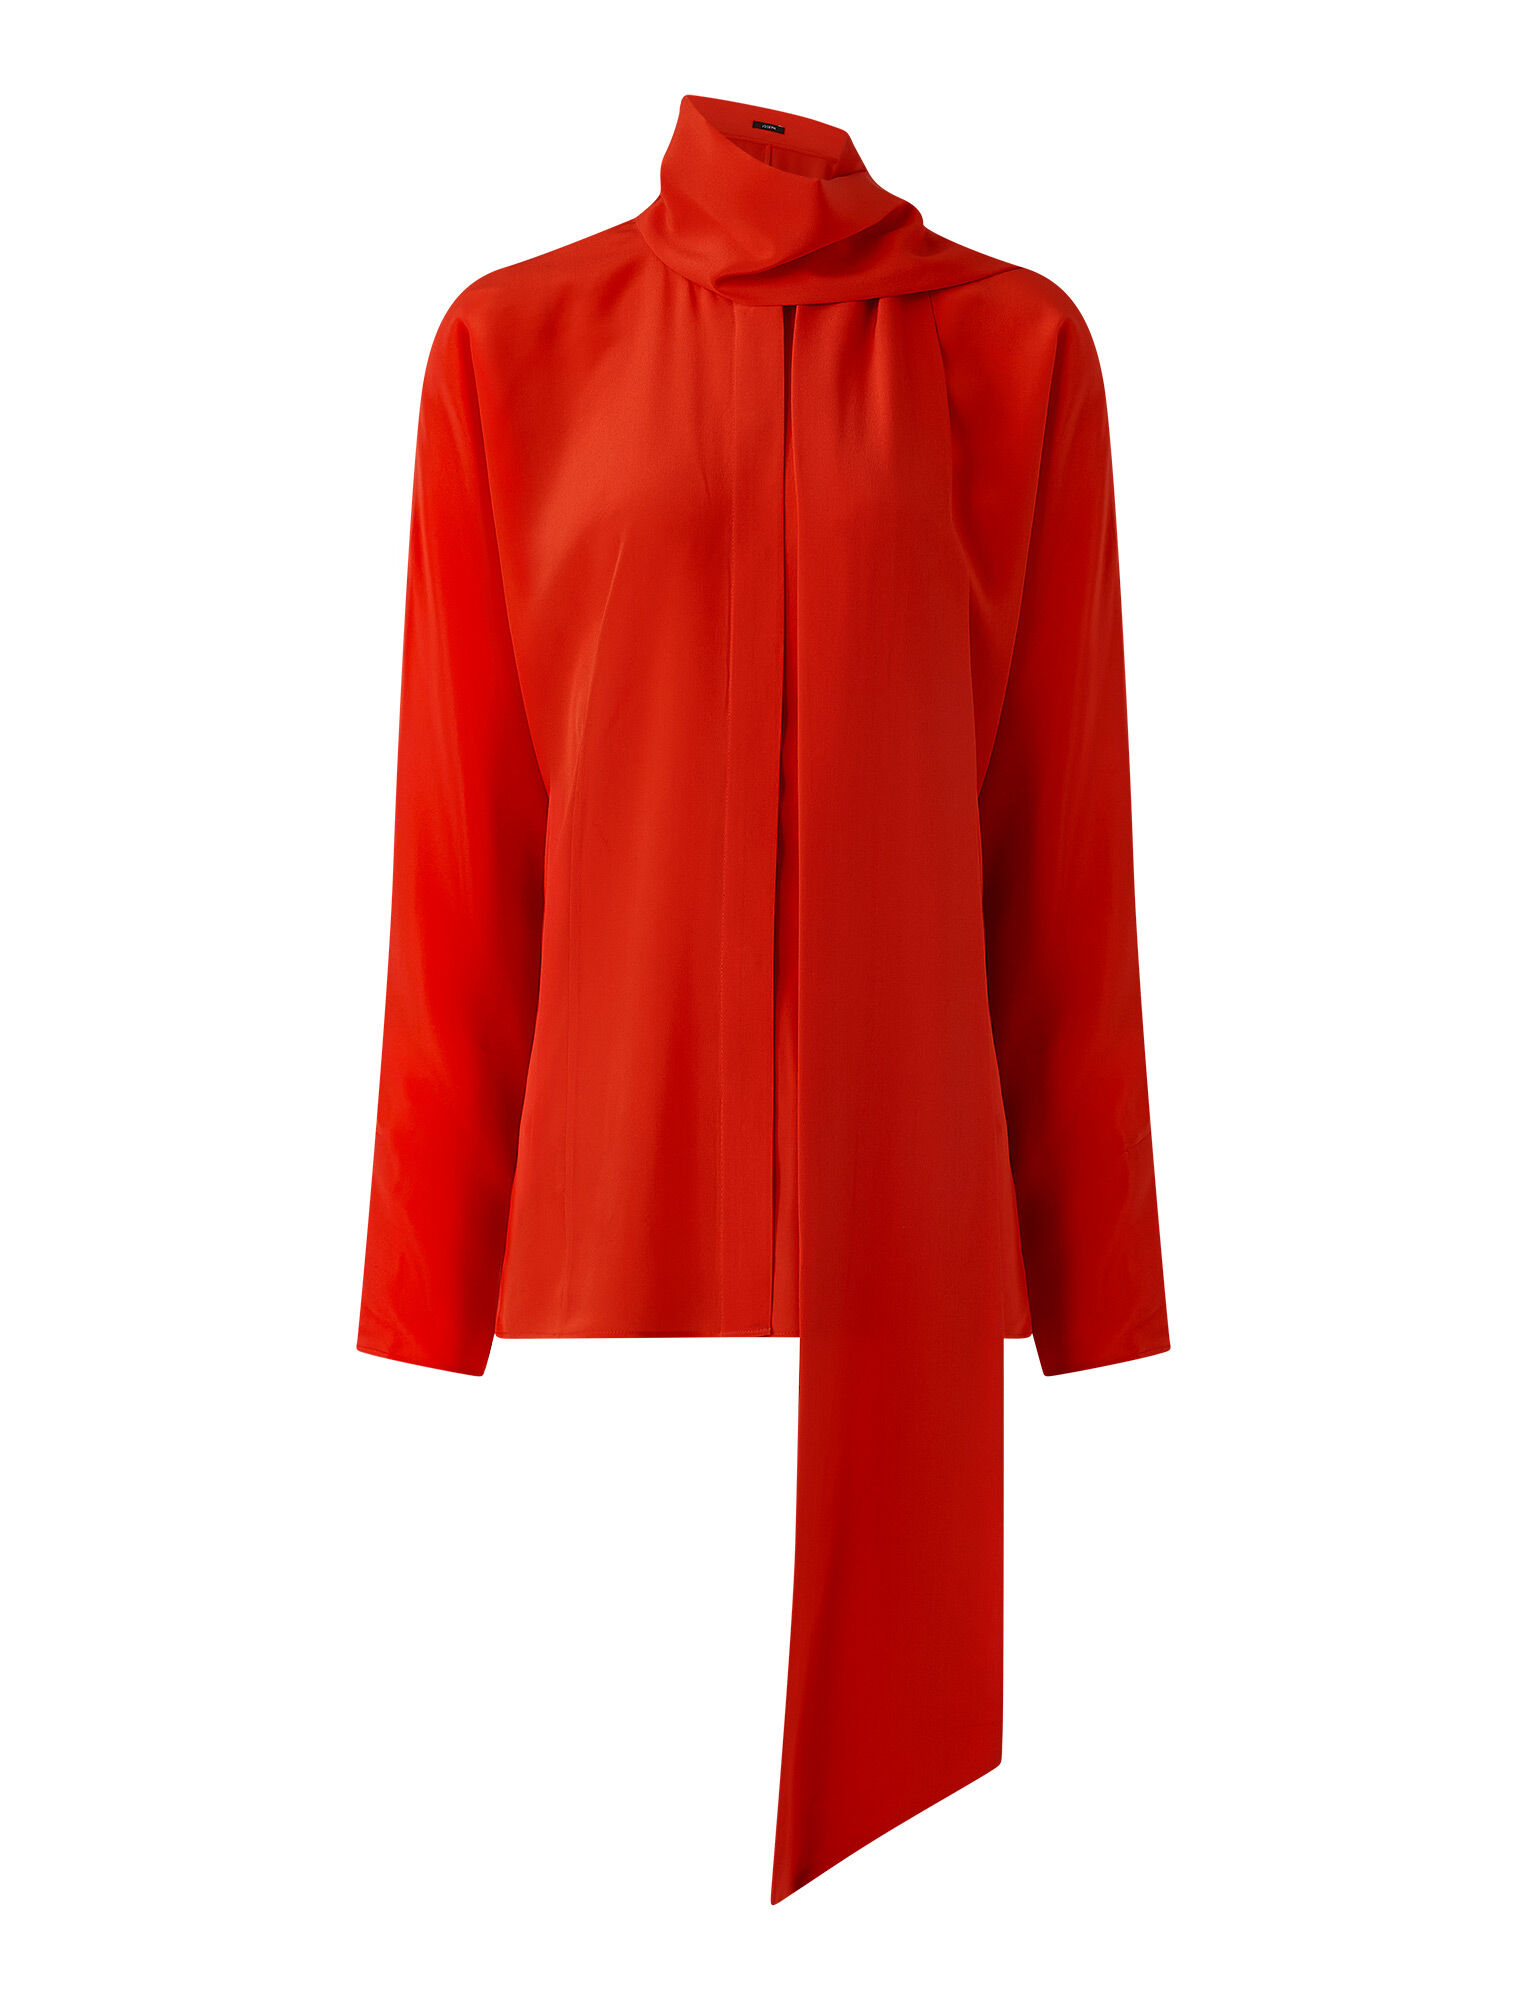 Joseph, Crepe de Chine Briti Blouse, in FLAME